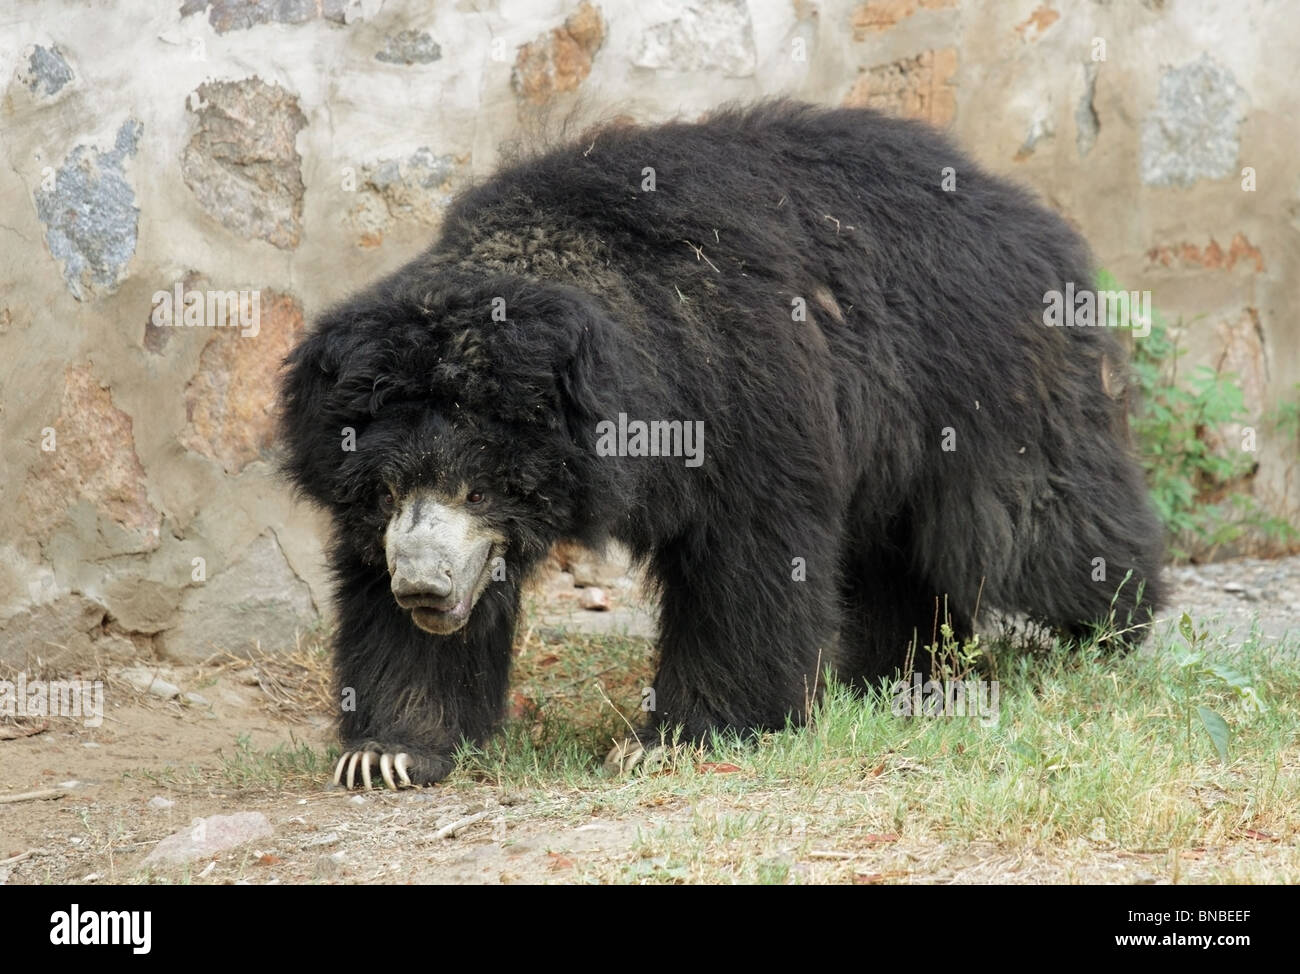 Asiatic Black Bear walking in its enclosure. Picture taken in New Delhi Zoo, India - Stock Image